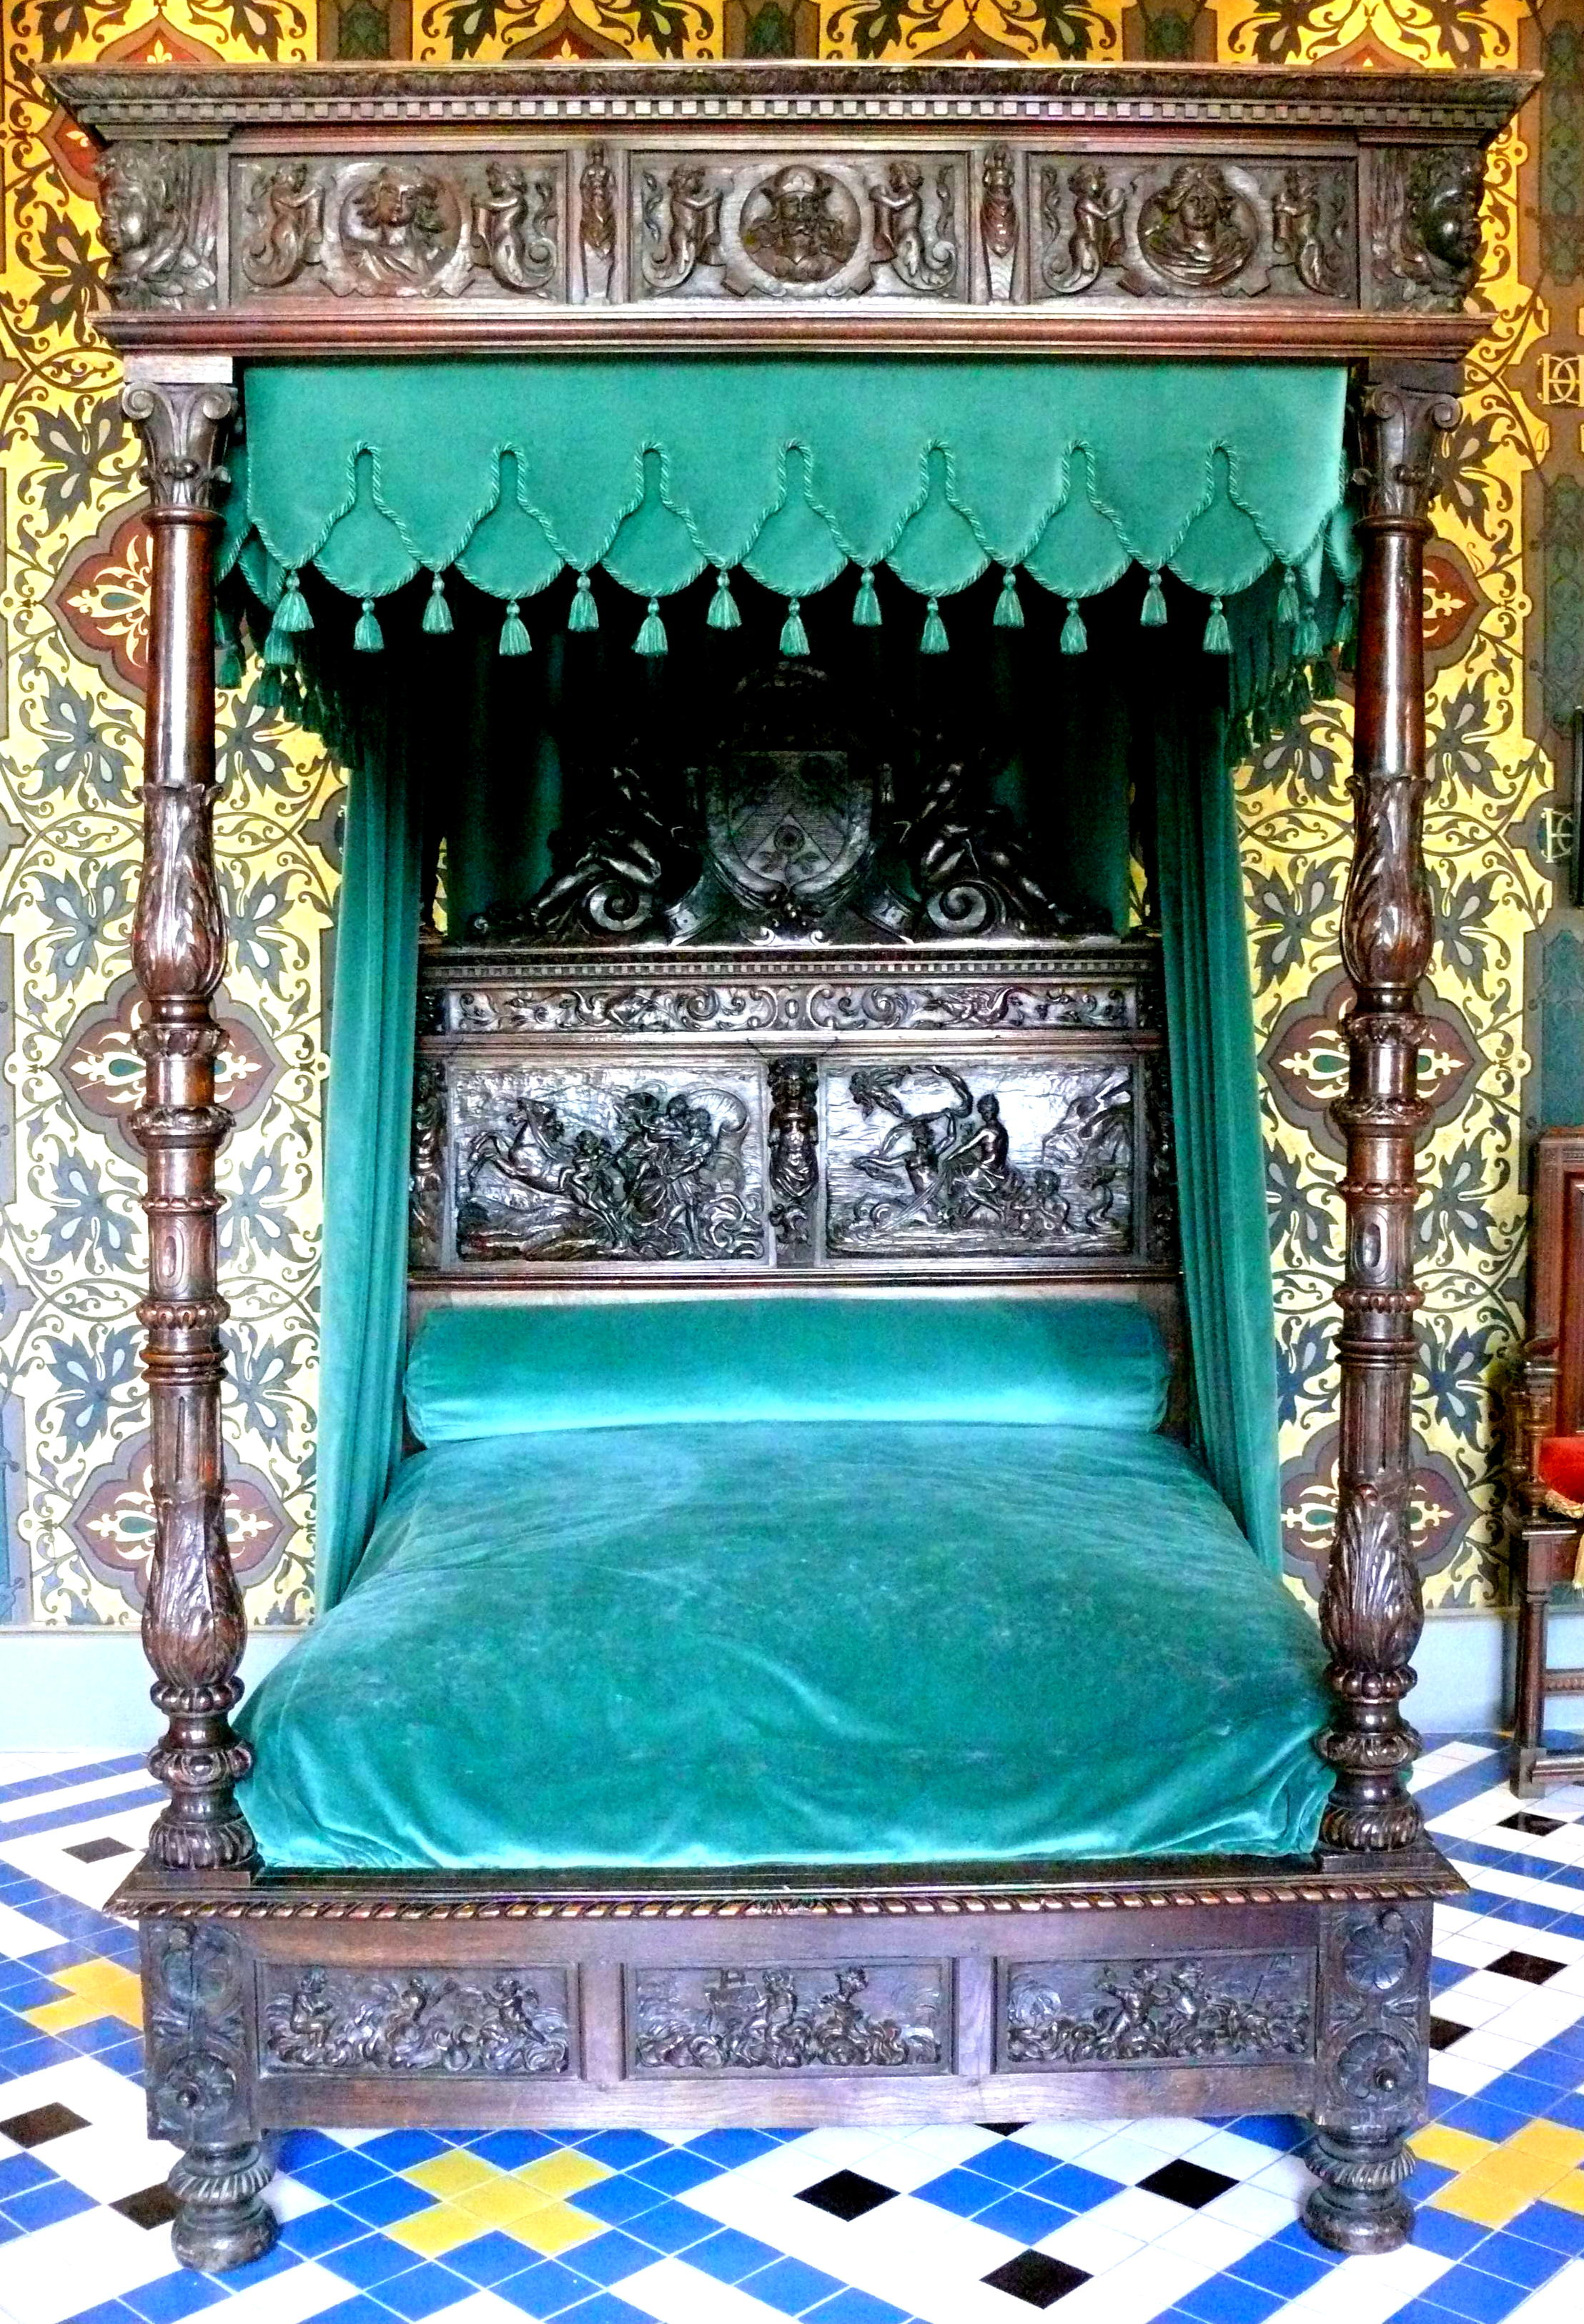 Rustic and vibrantly turquoise four poster bed